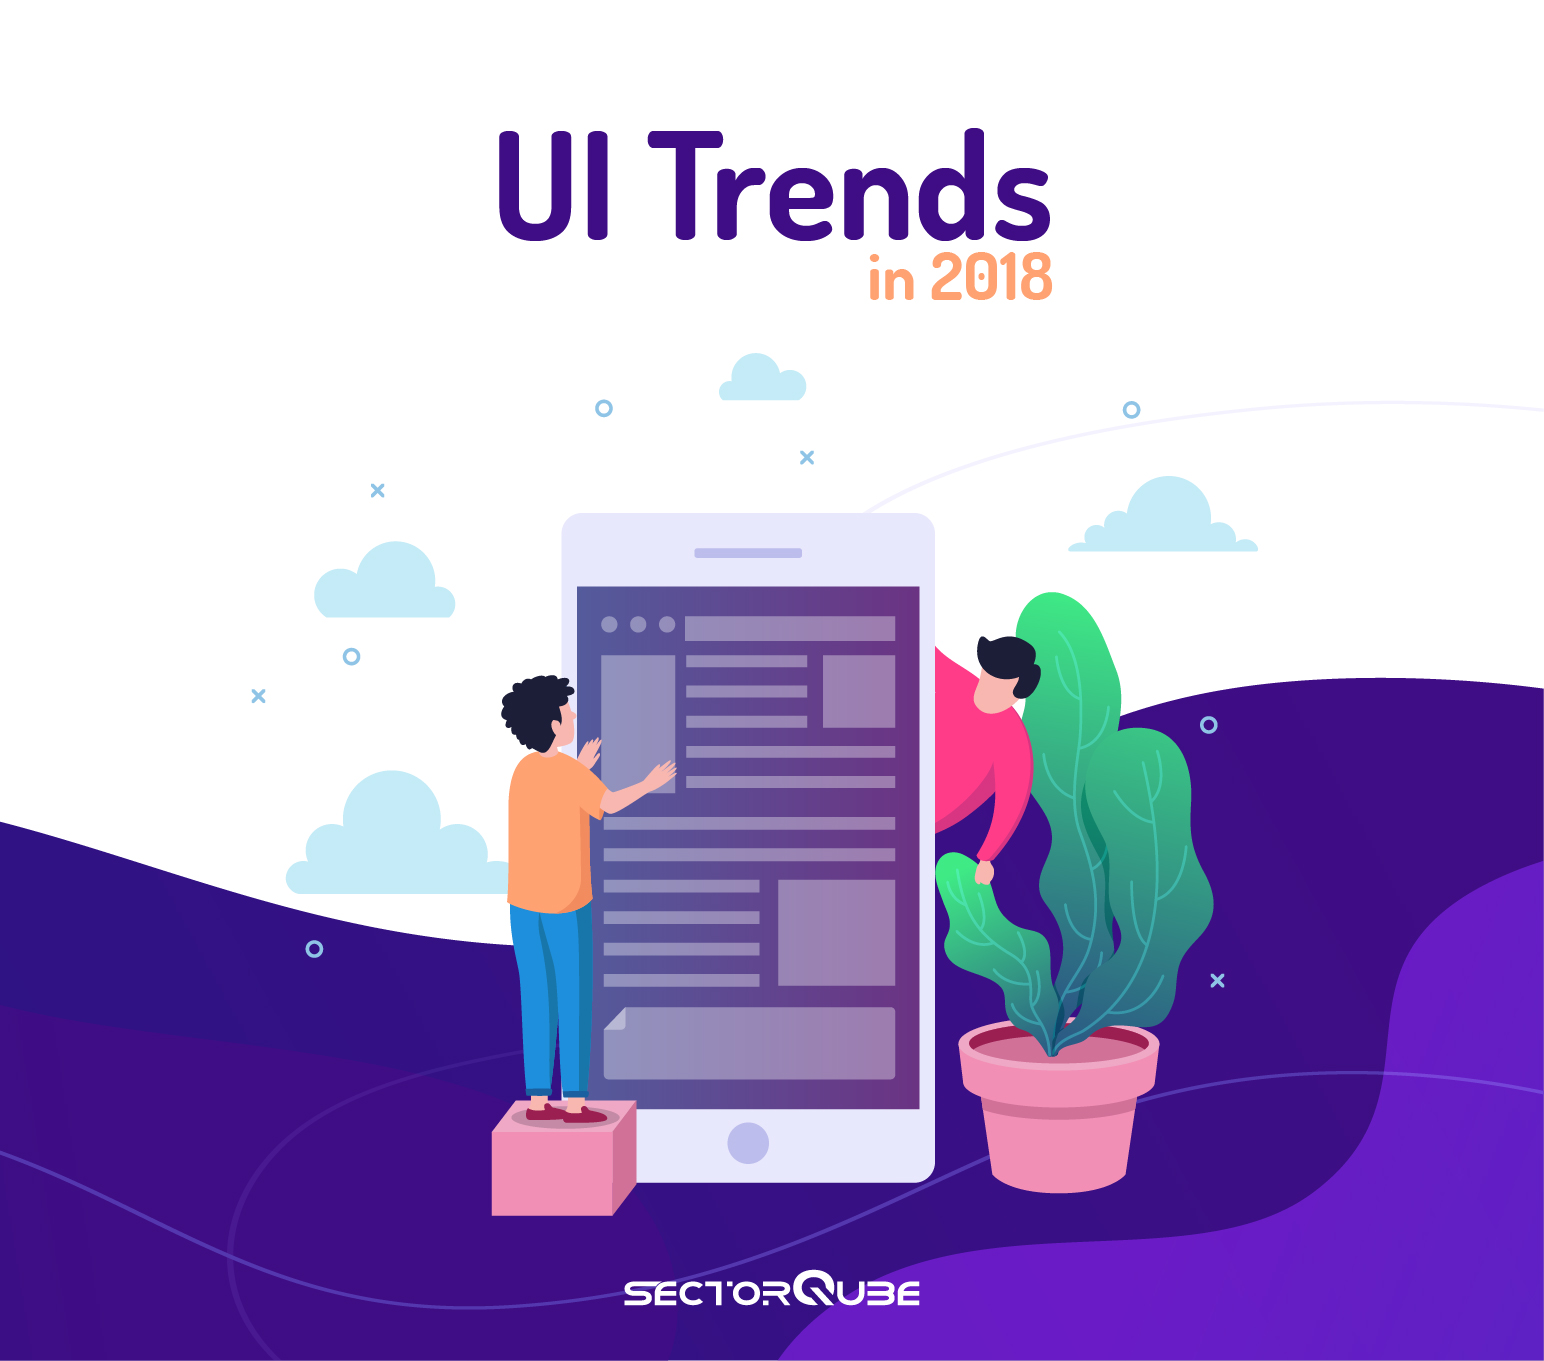 Top UI trends in 2018